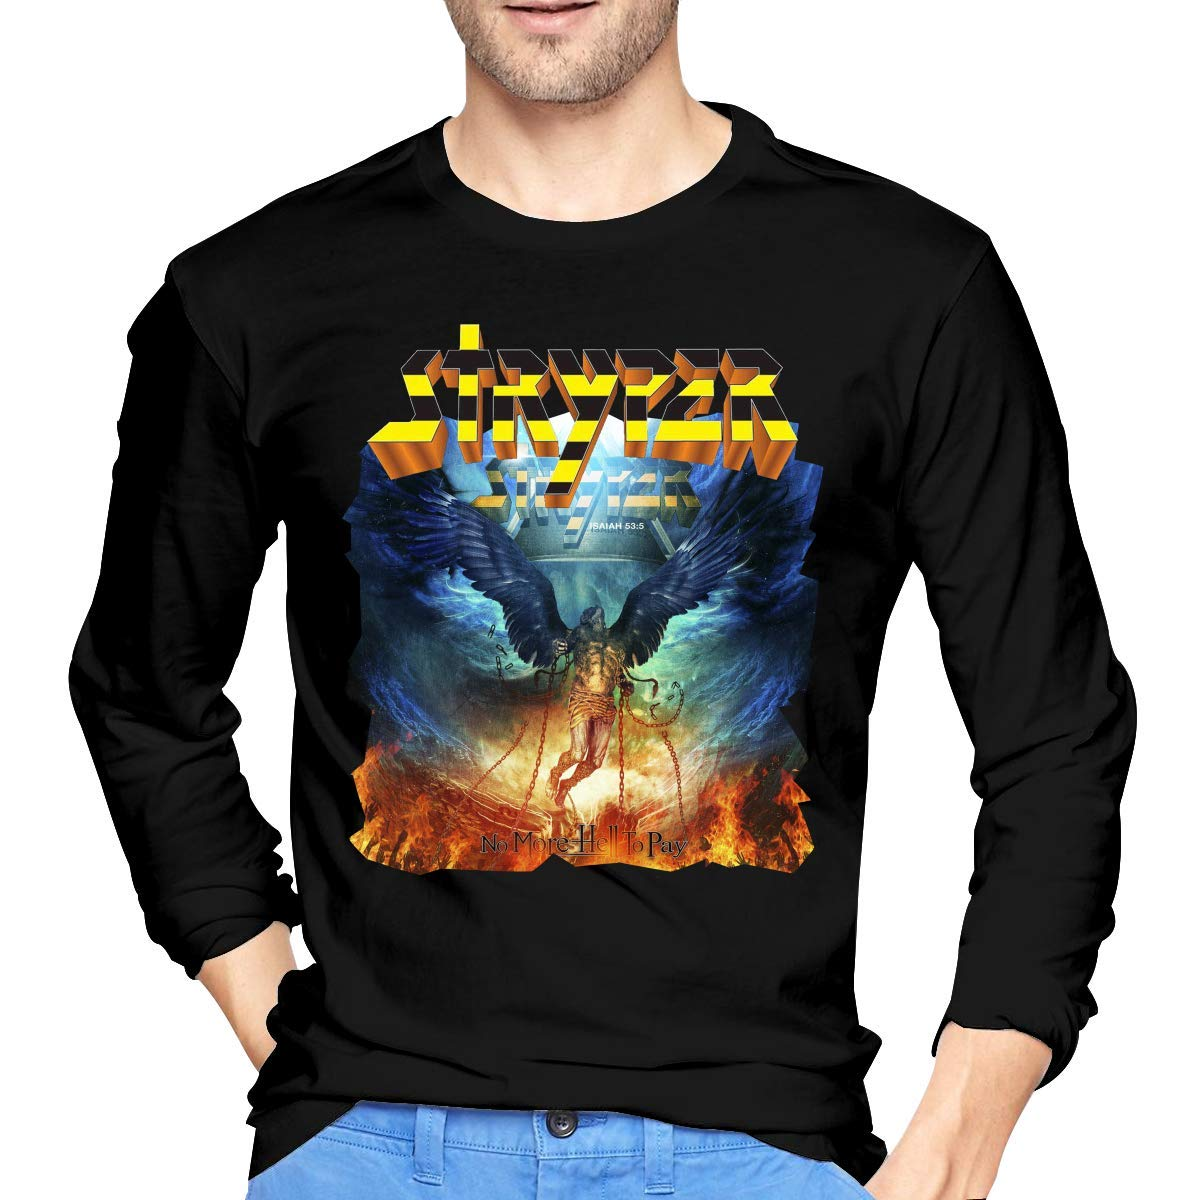 Fssatung S Stryper No More Hell To Pay Tee Black Shirts